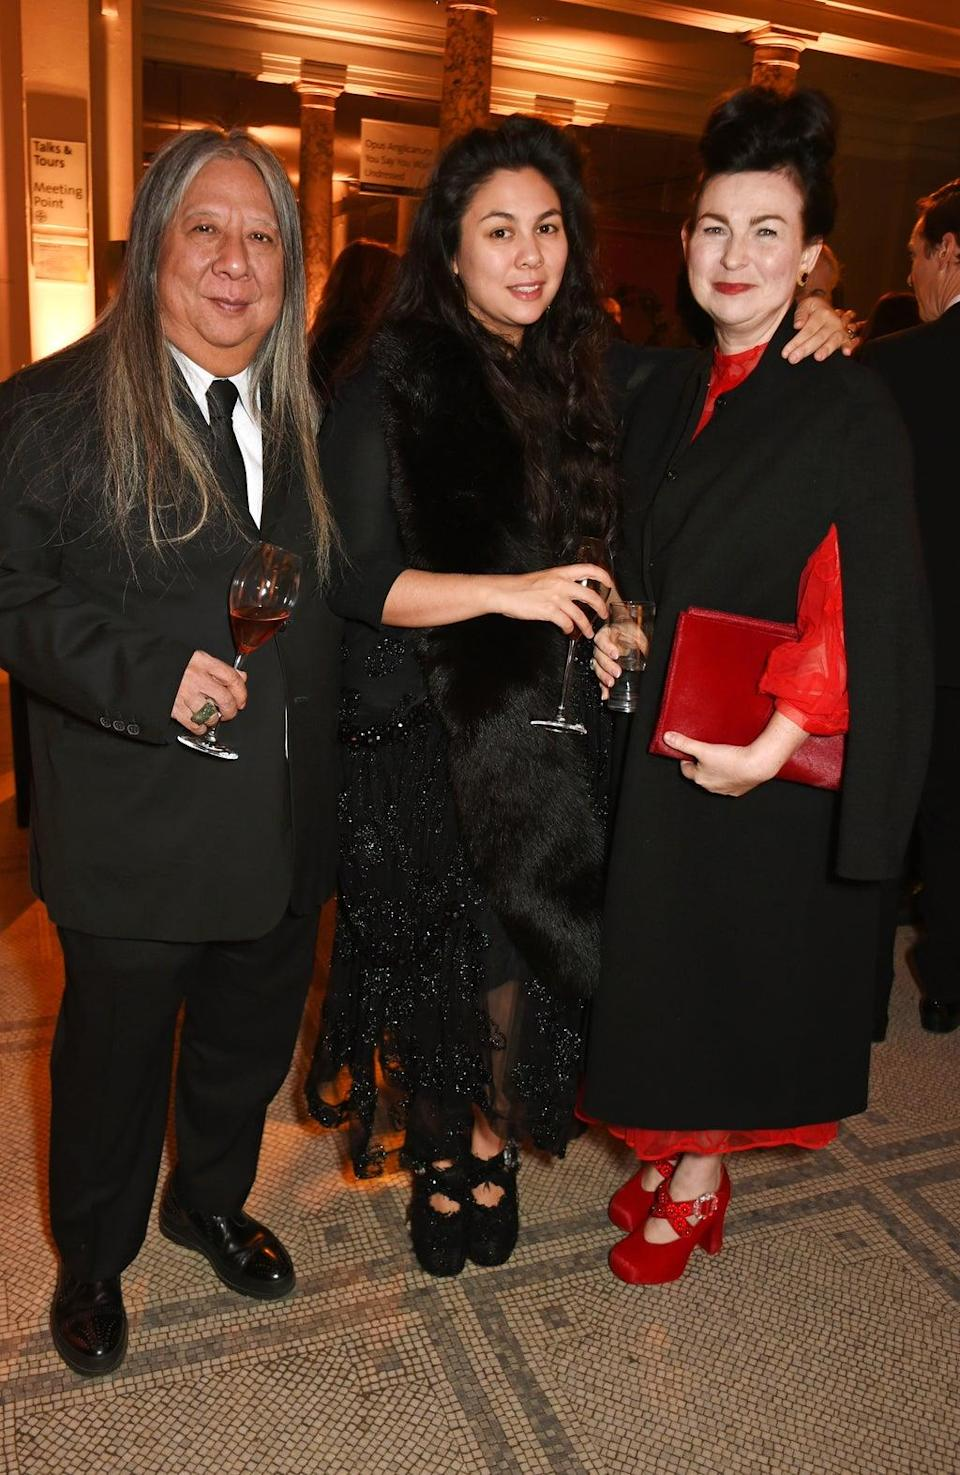 Simone Rocha with her father John and mother Odette (Dave Benett for Getty images)